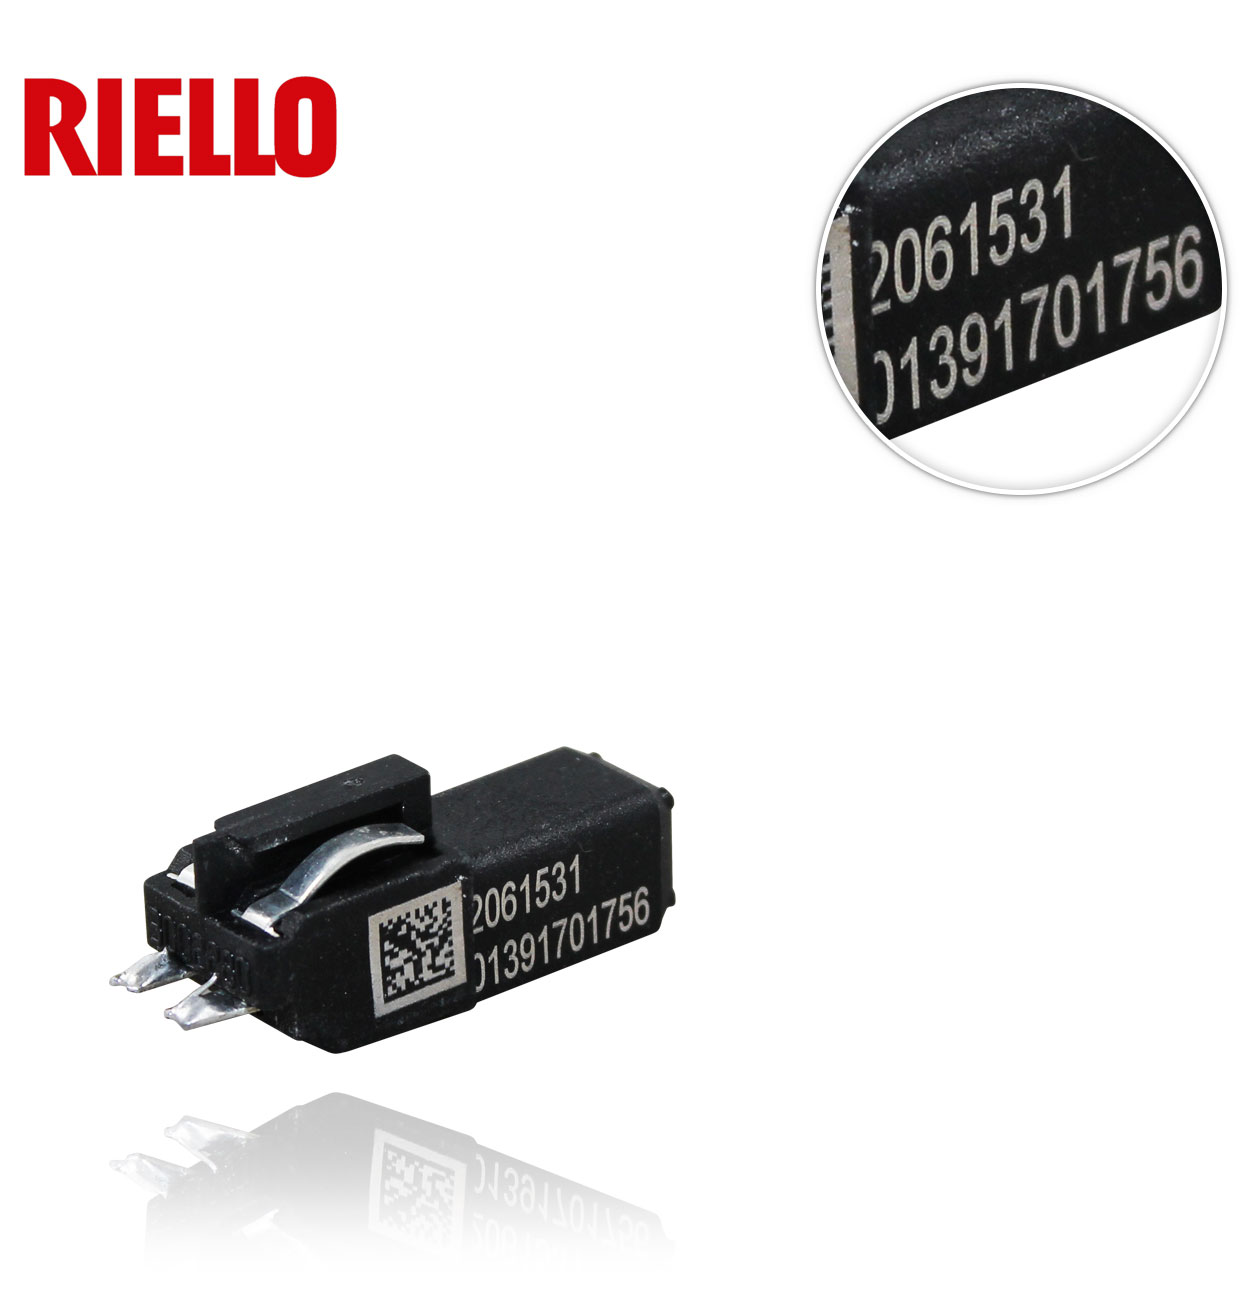 C 483/530/531/554/555 SE 20132573/ 3002280 RIELLO CELL